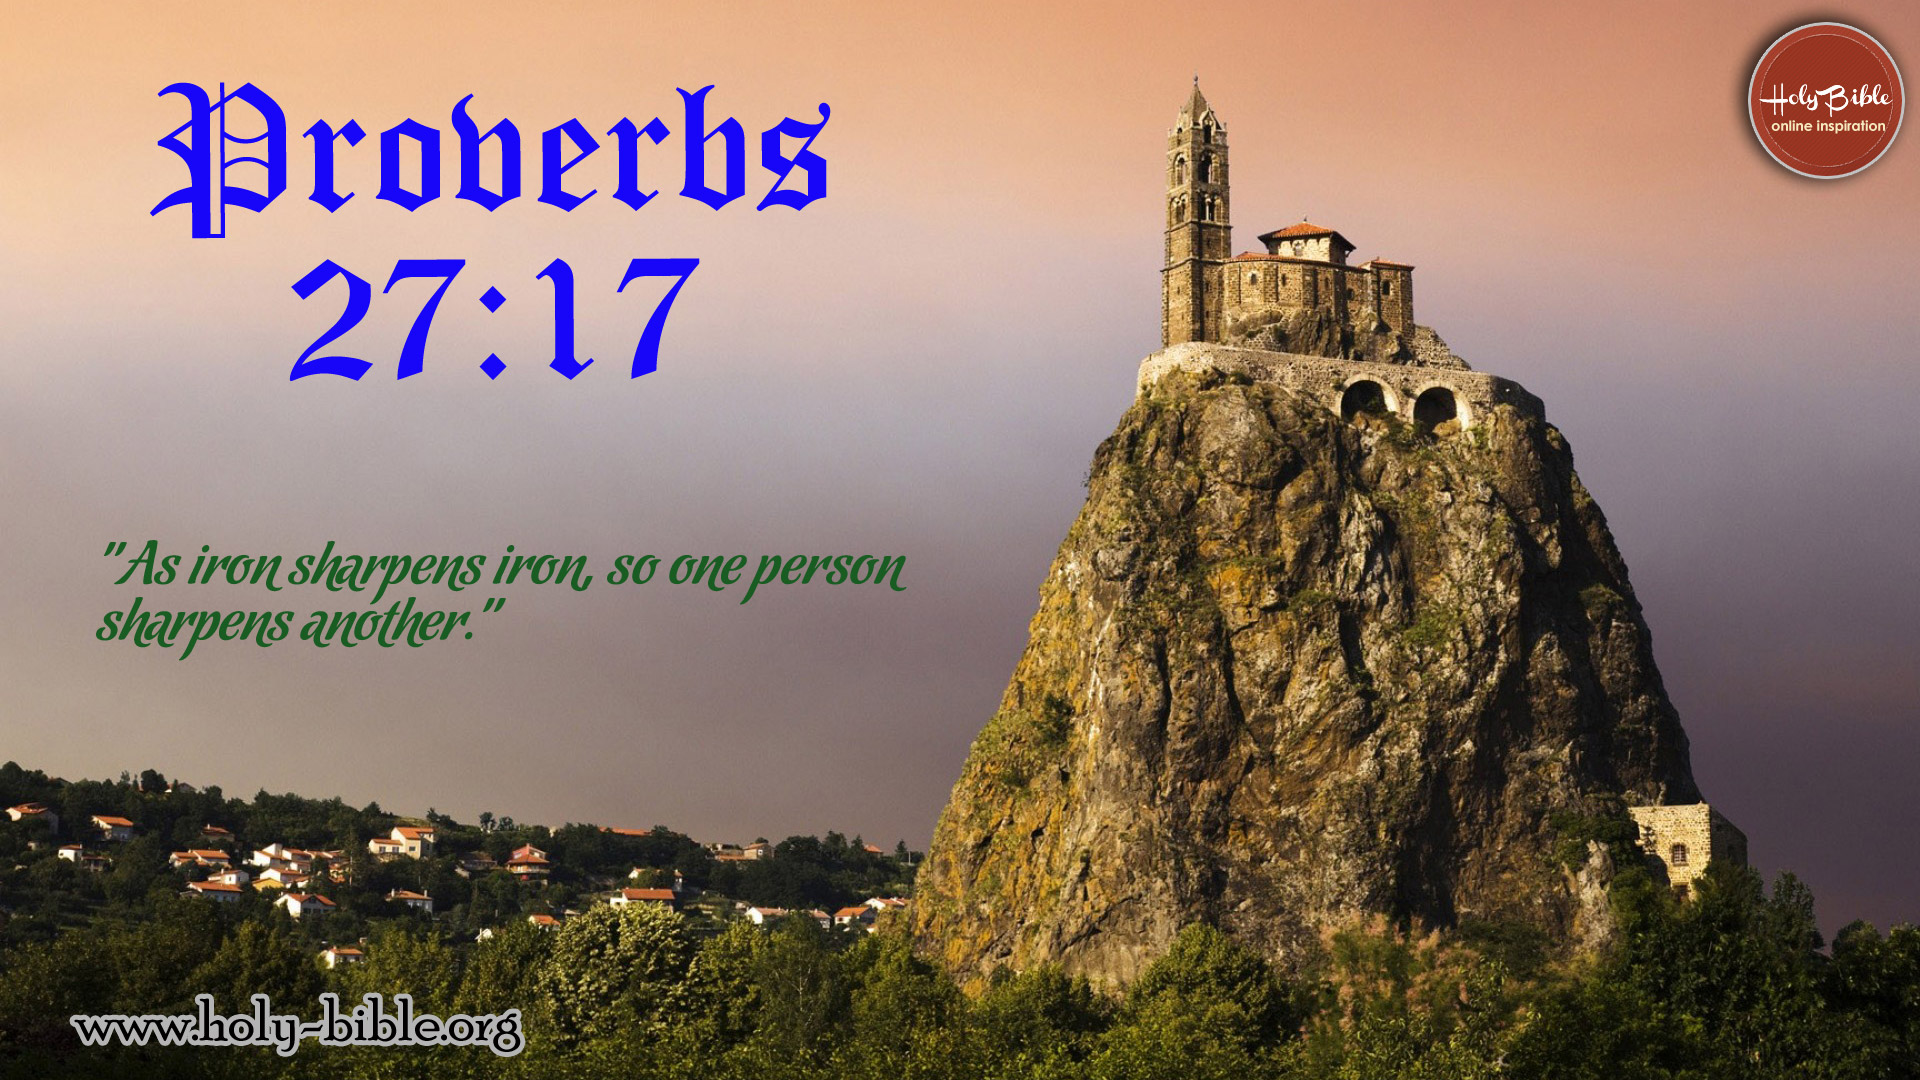 Bible Verse of the day - Proverbs 27:17